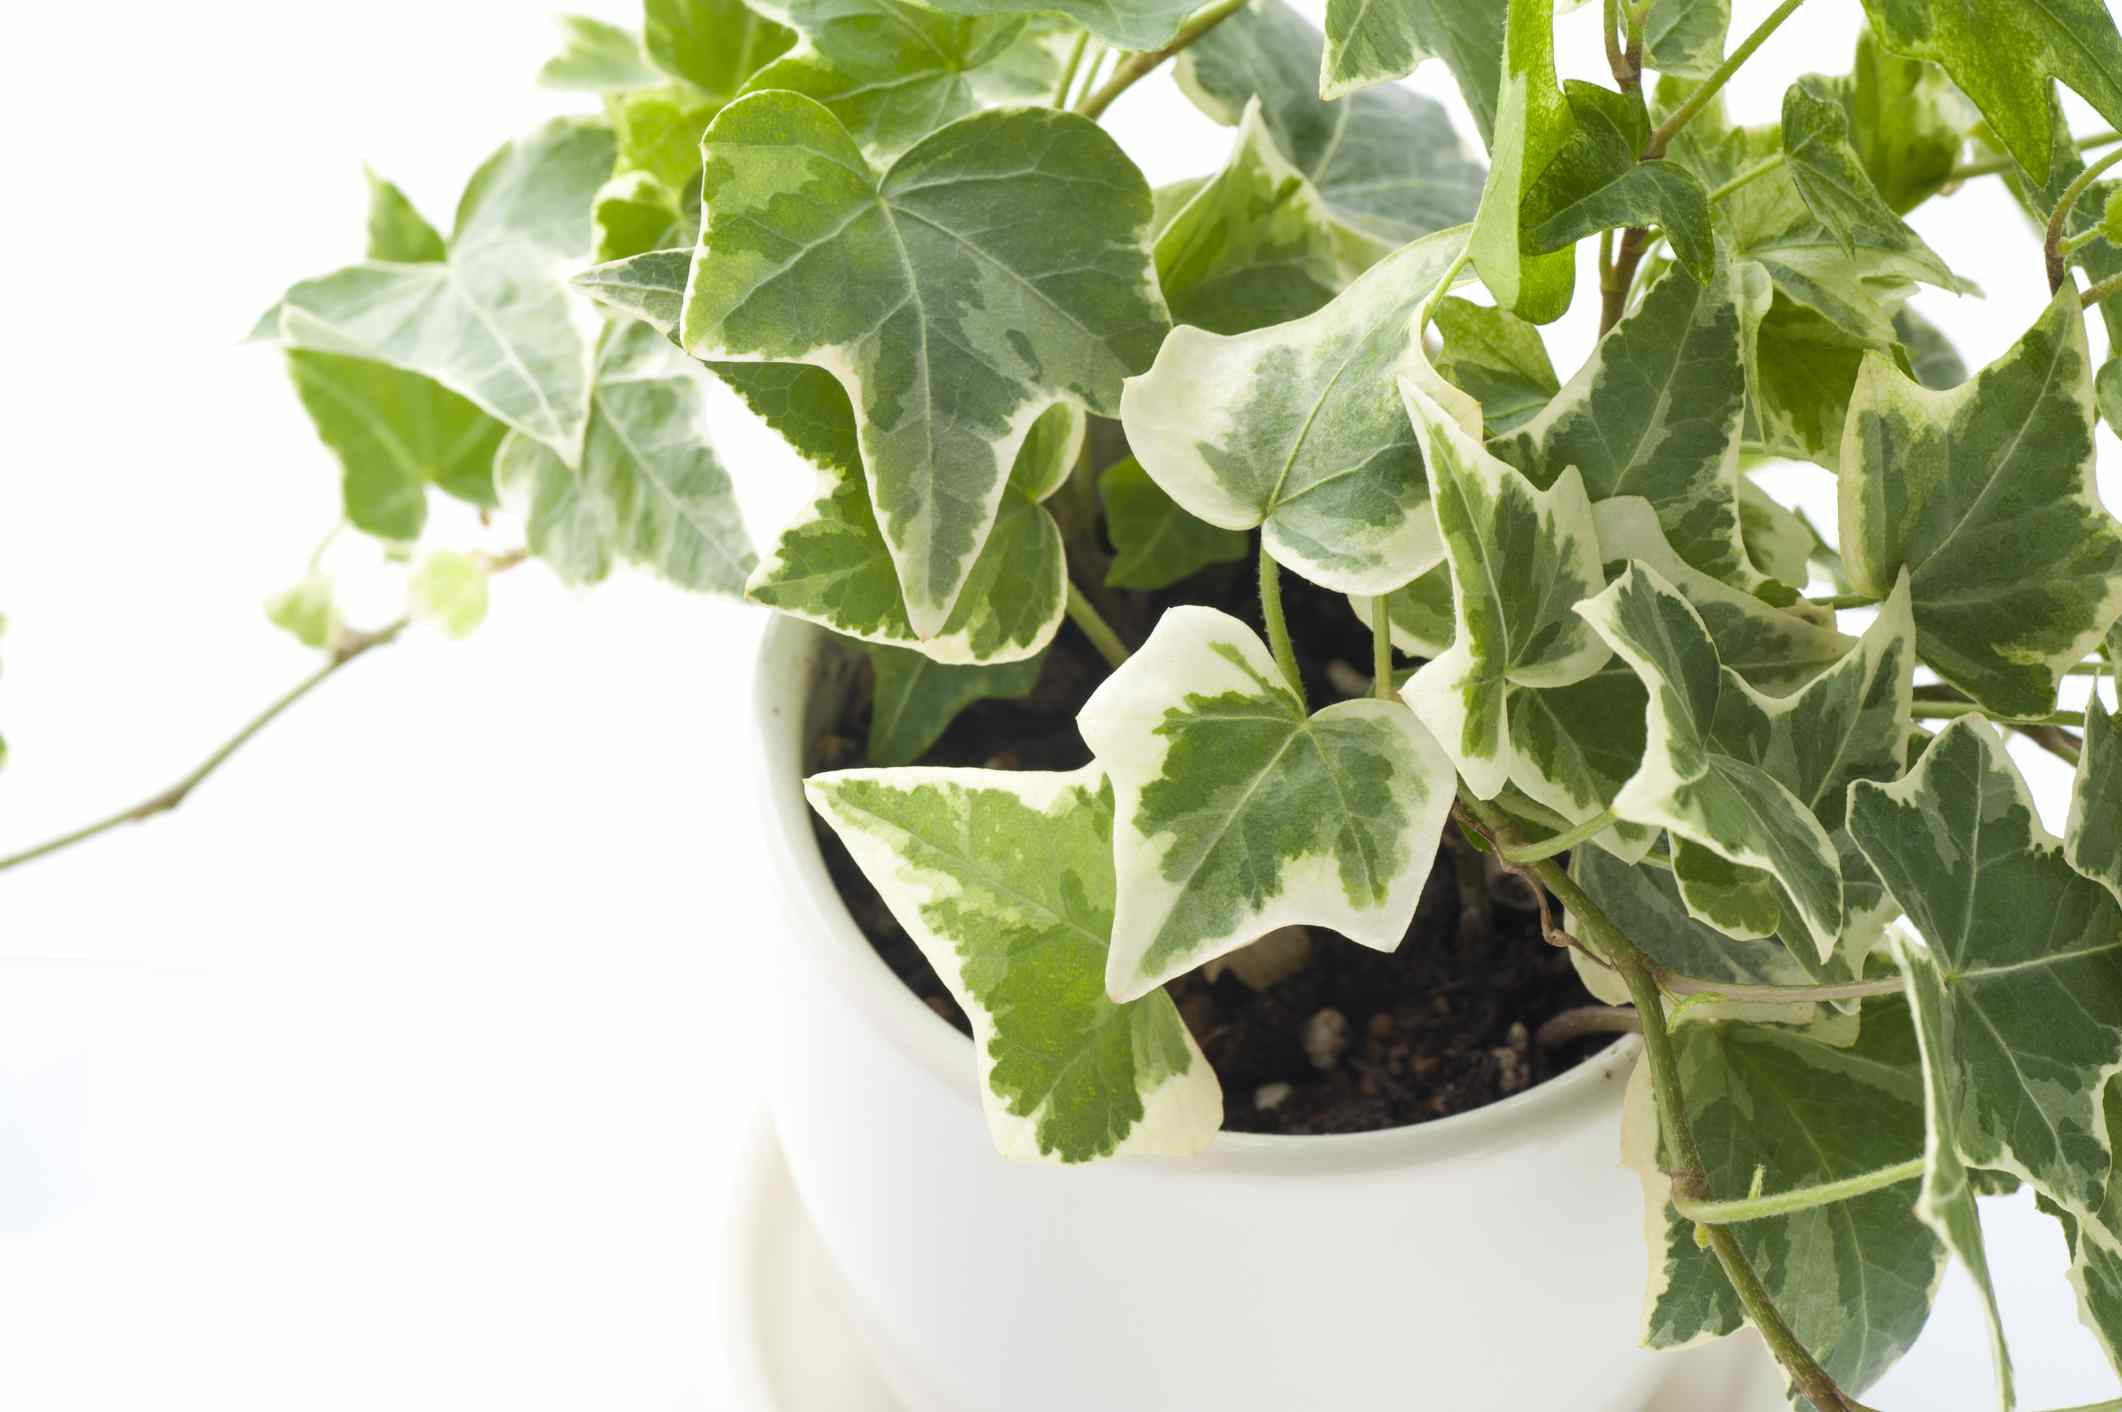 green and white english ivy plant in white pot on white background